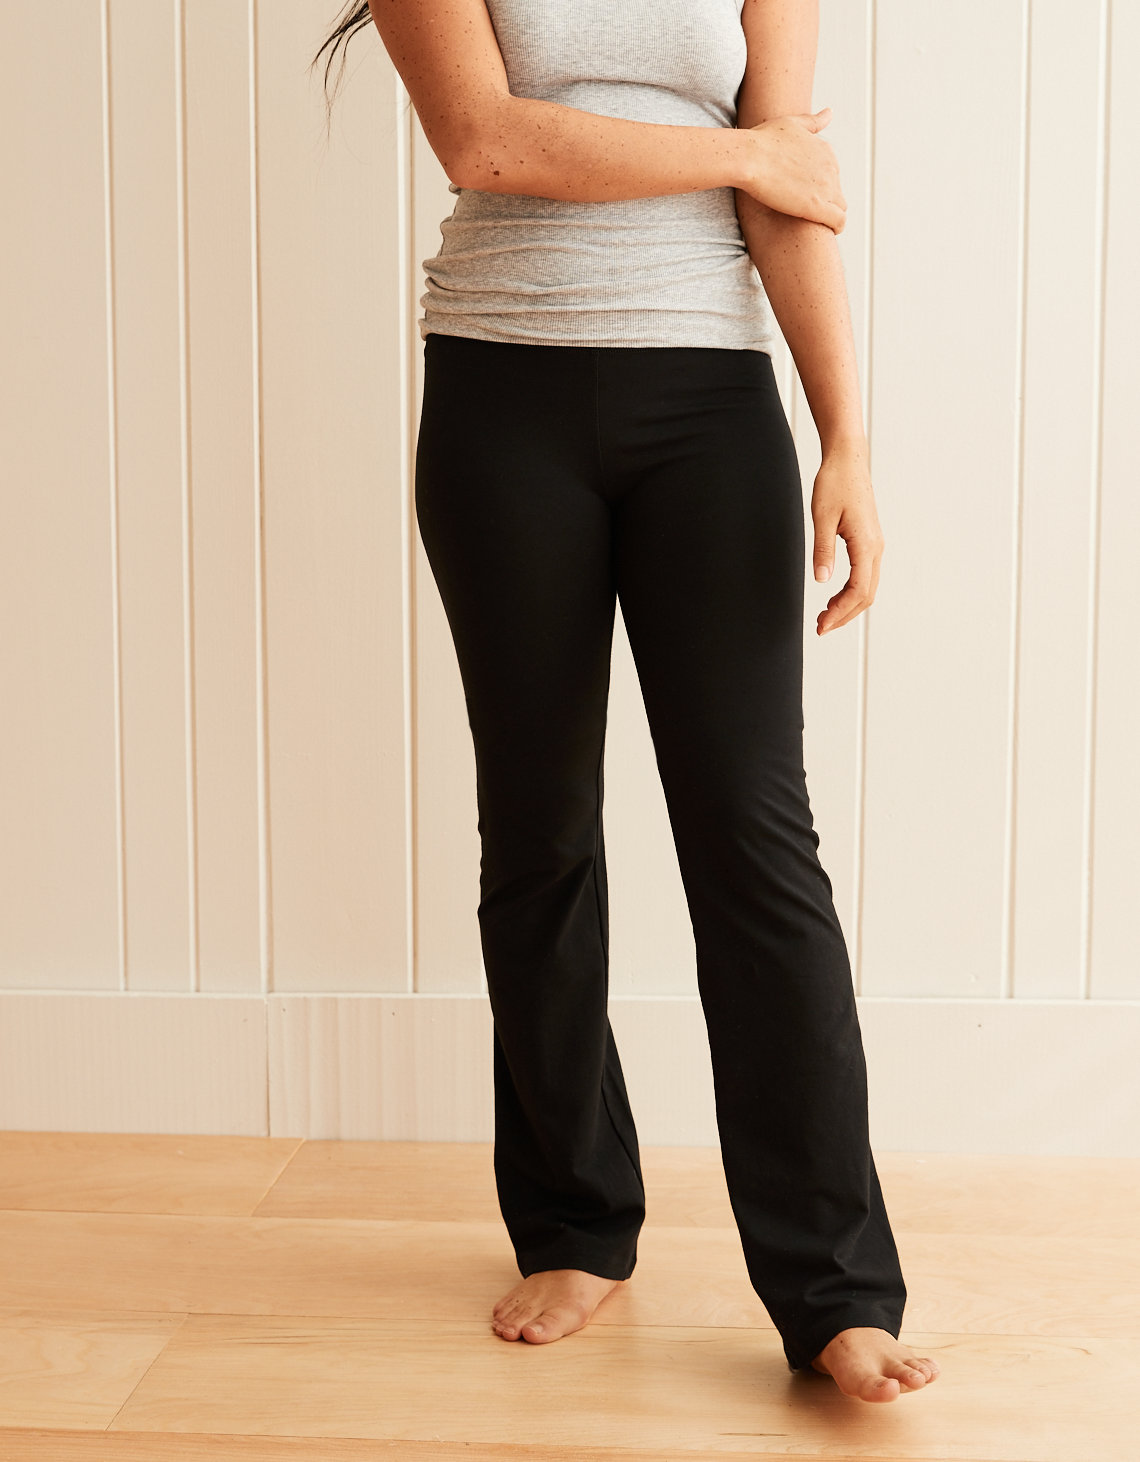 fe45075ca72 Aerie Chill High Waisted Boot Pant